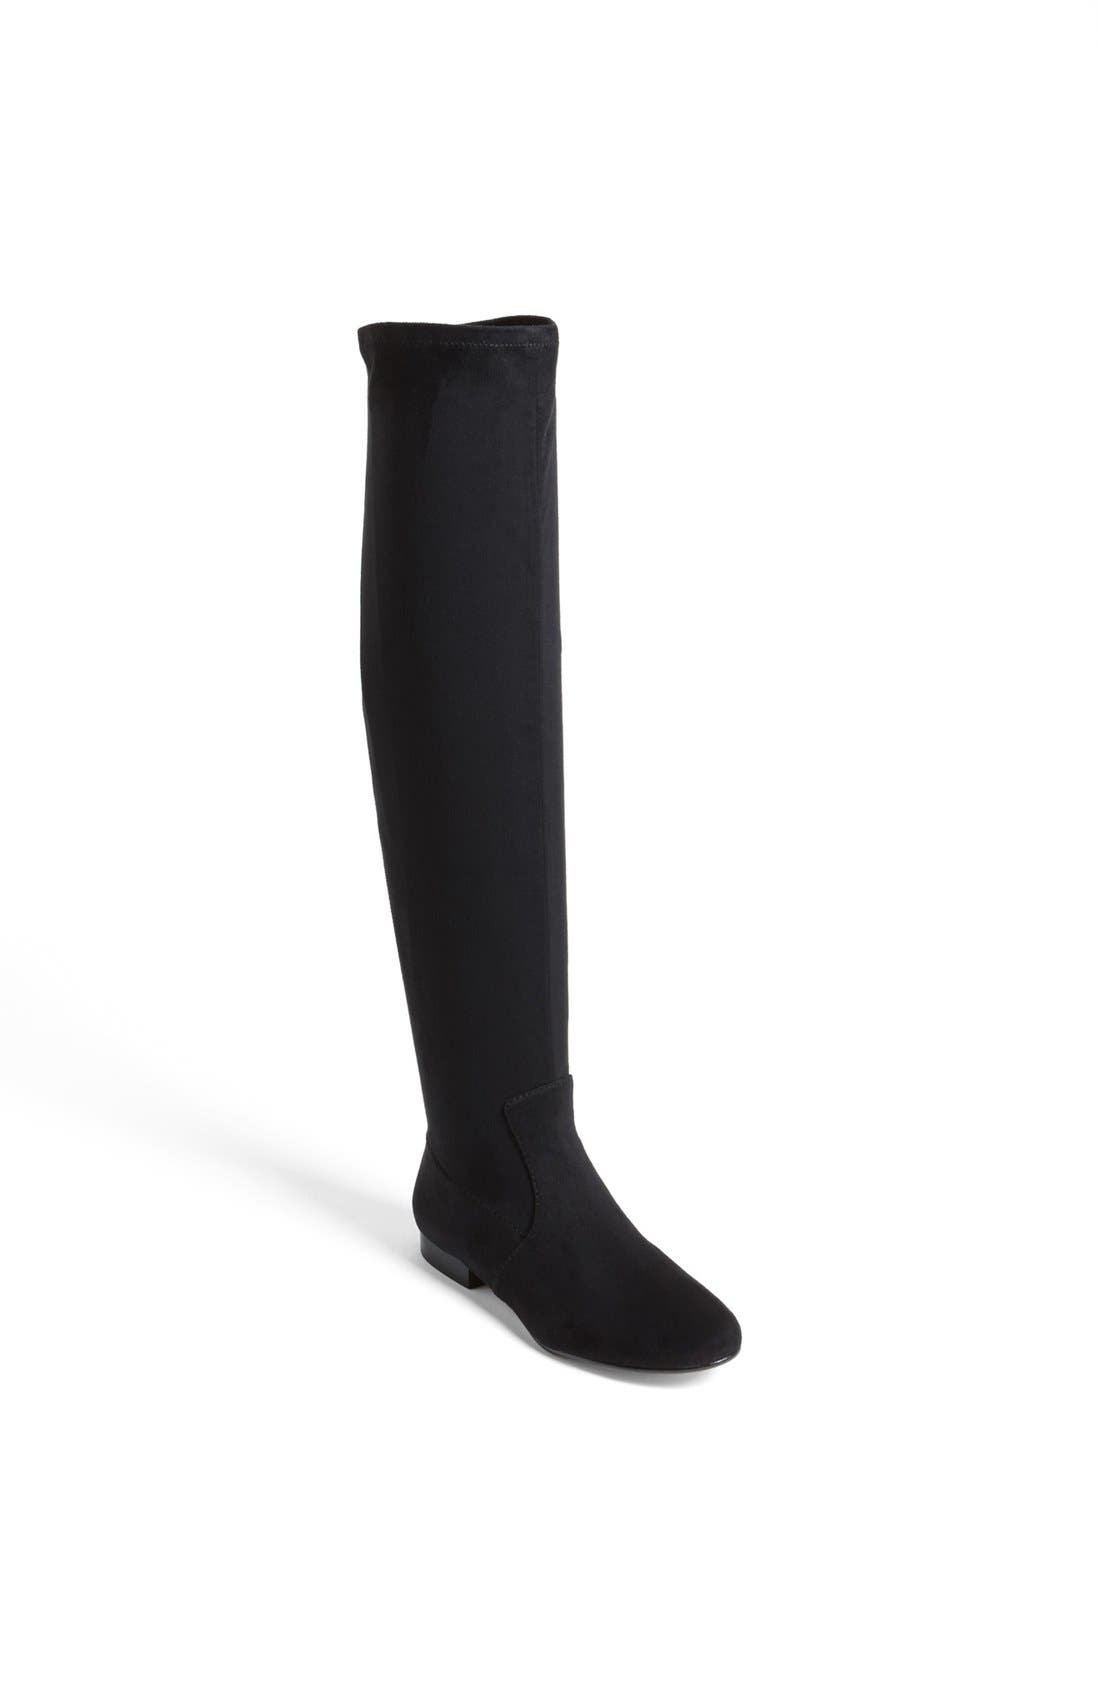 Alternate Image 1 Selected - Ivanka Trump 'Monty' Over the Knee Boot